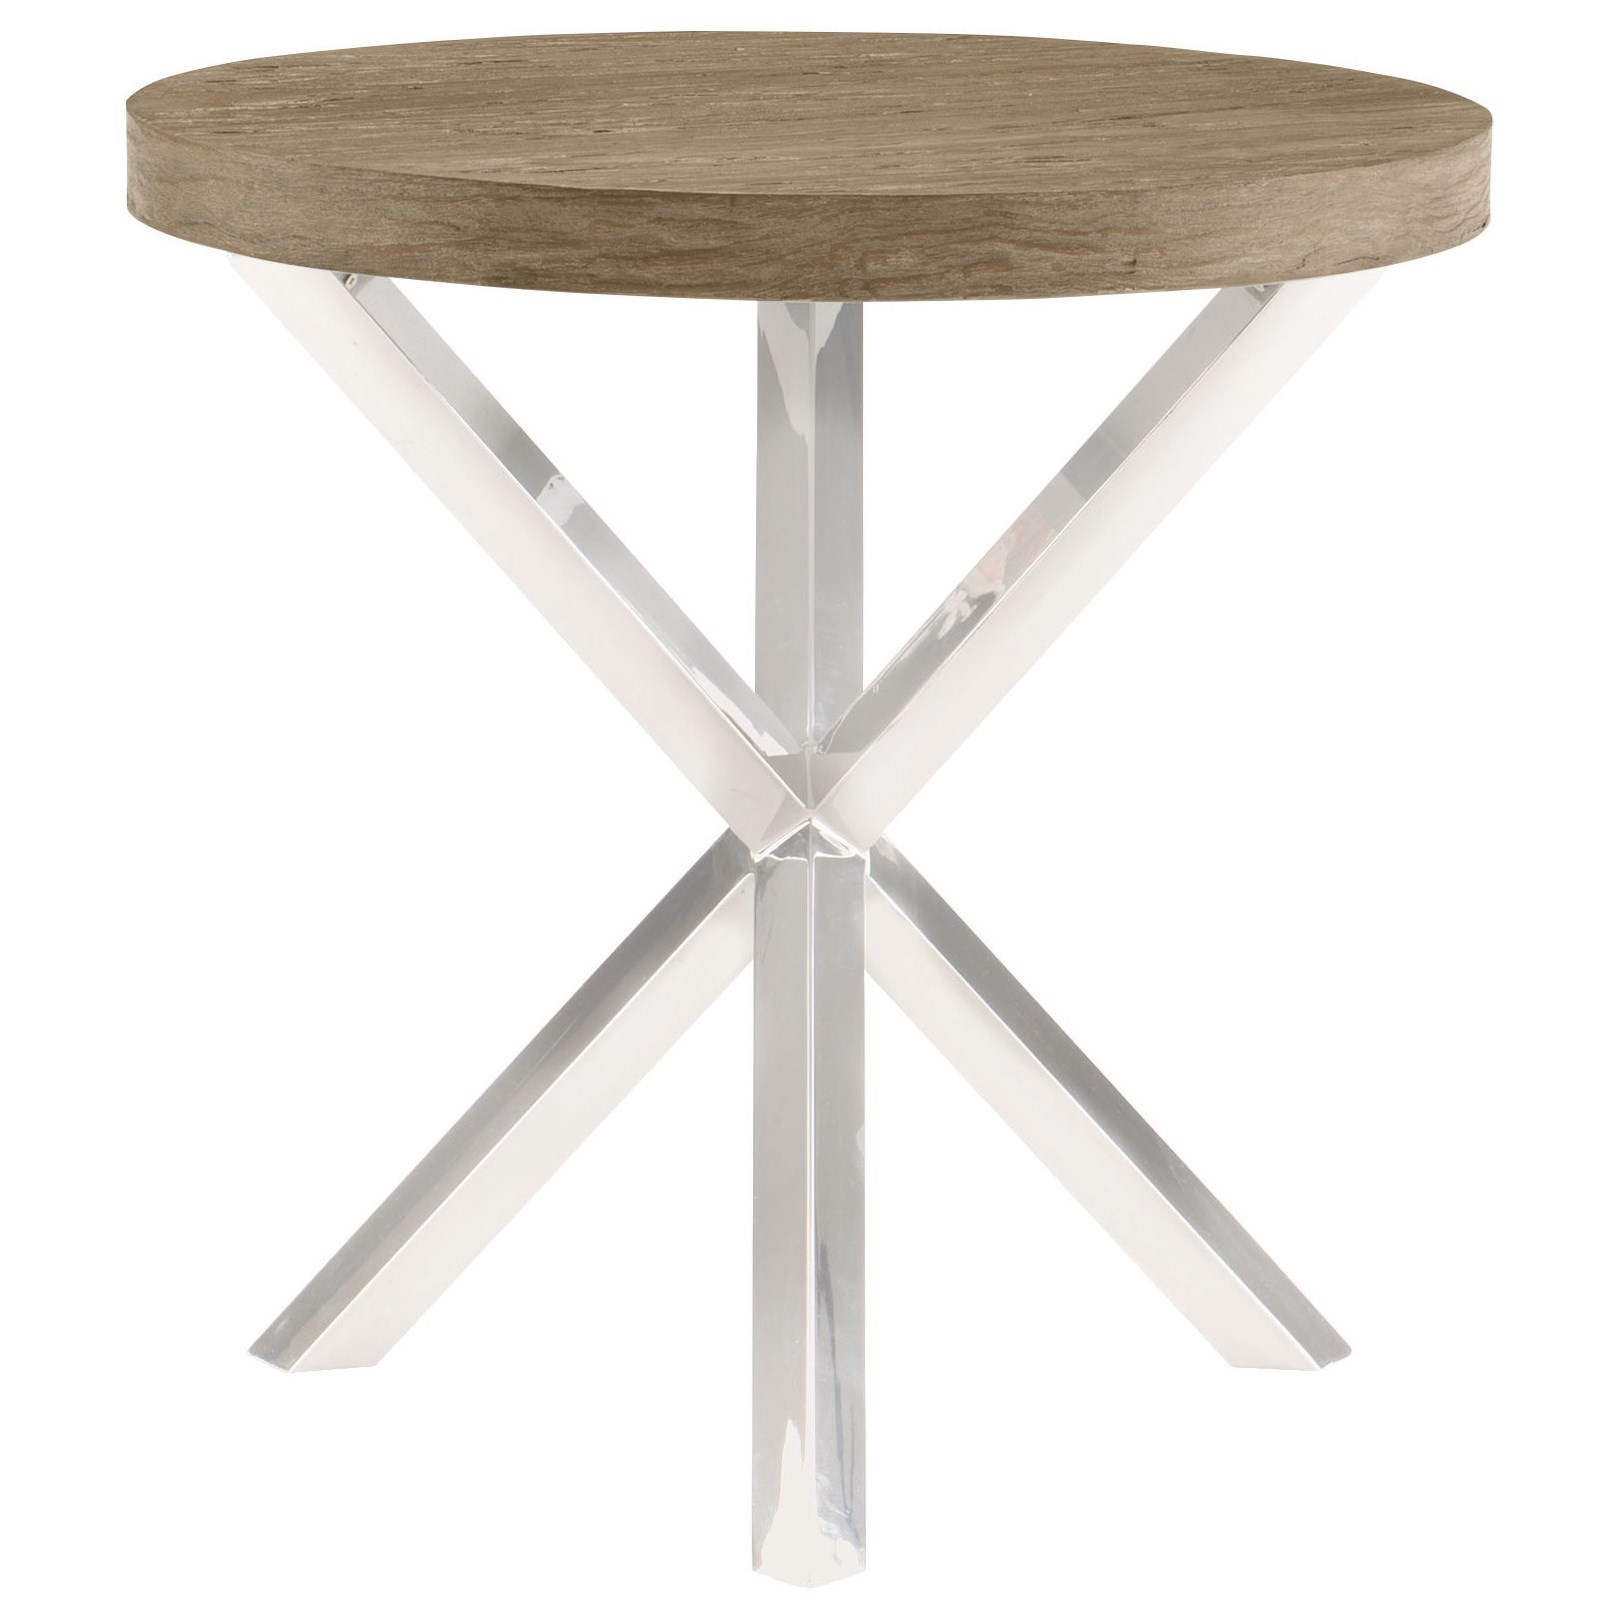 Pelham Round Chairside Table by Bernhardt at Fisher Home Furnishings